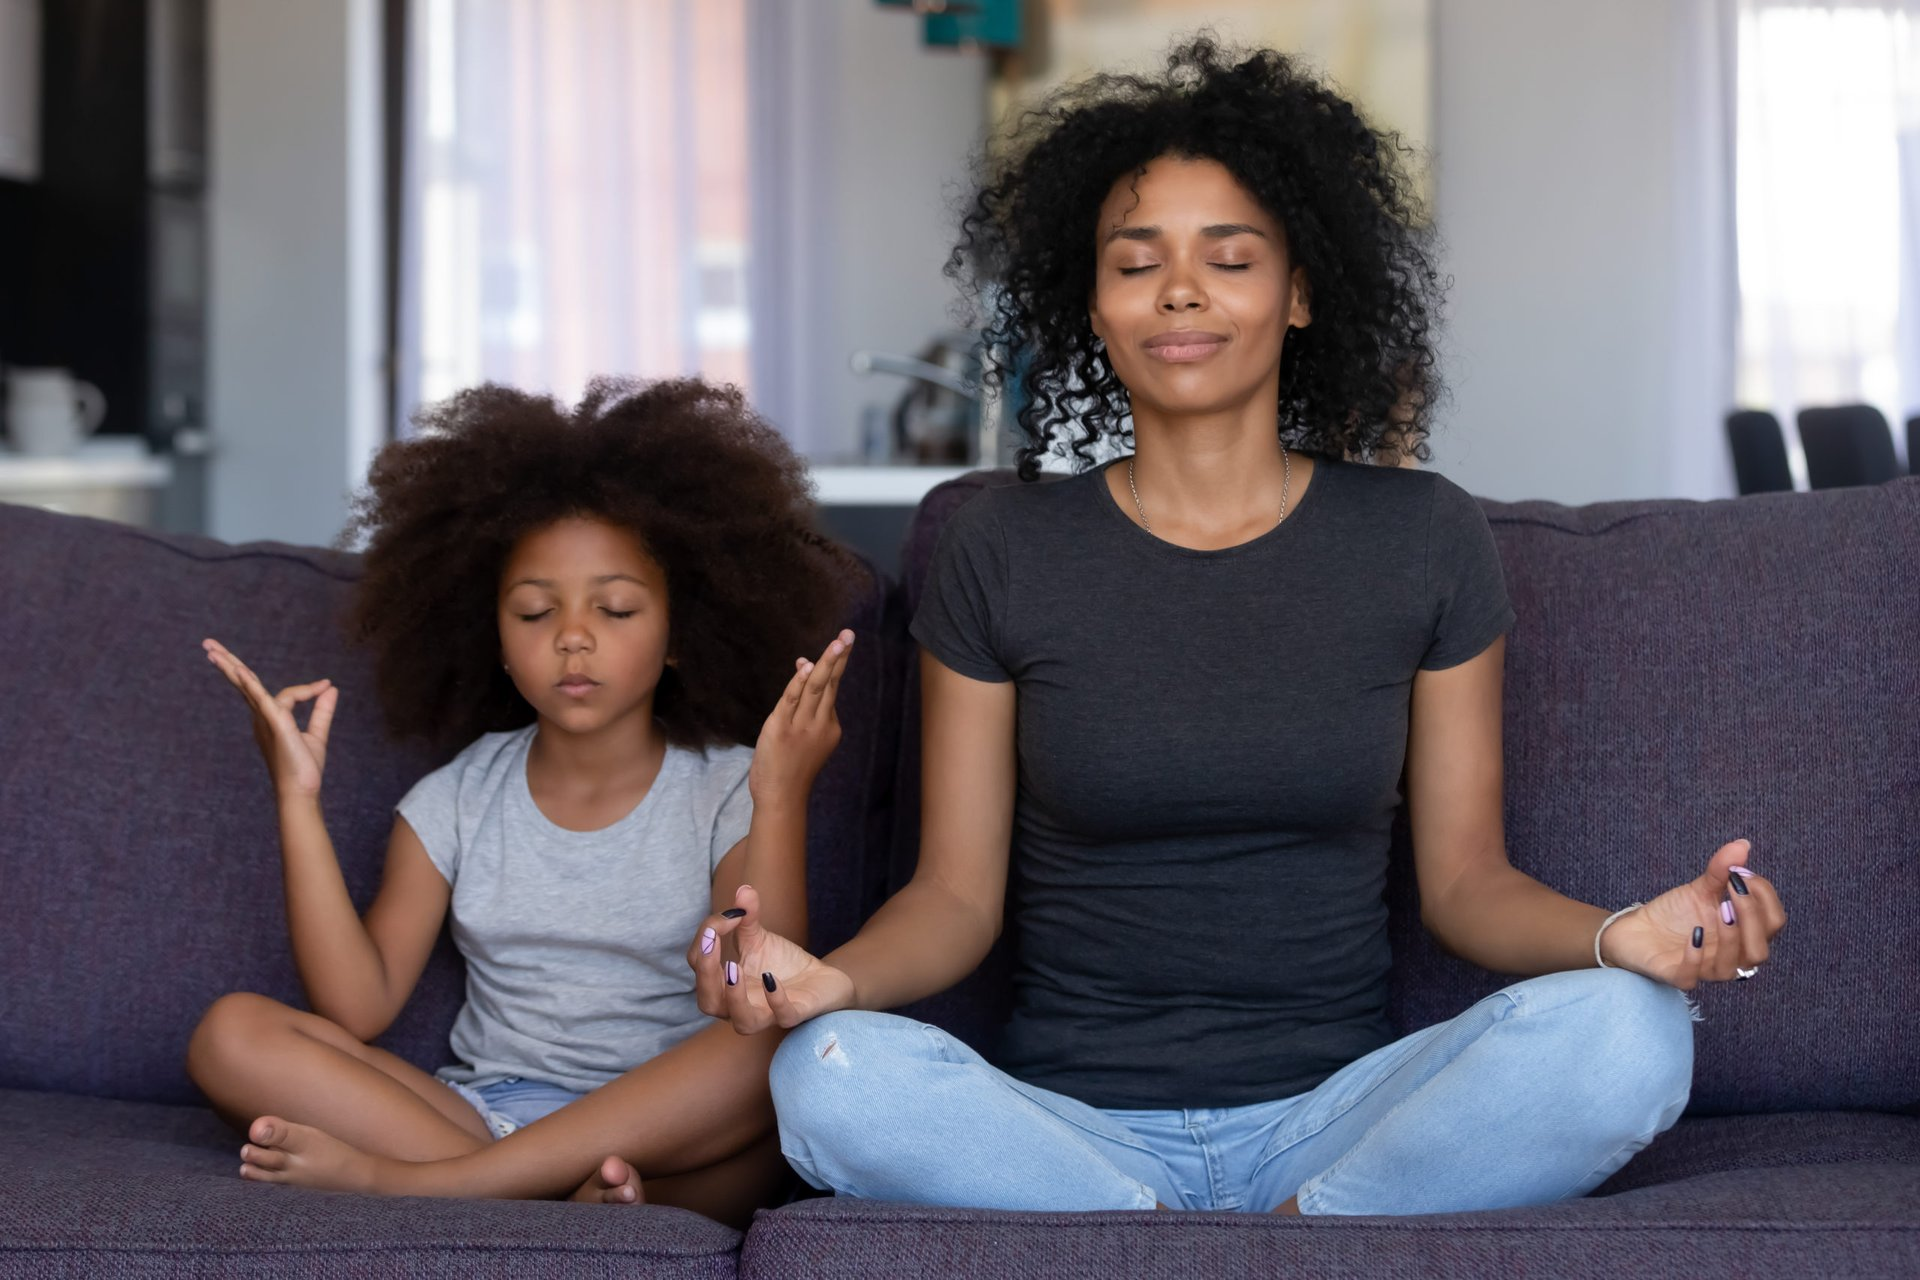 A mother and daughter meditating on a couch